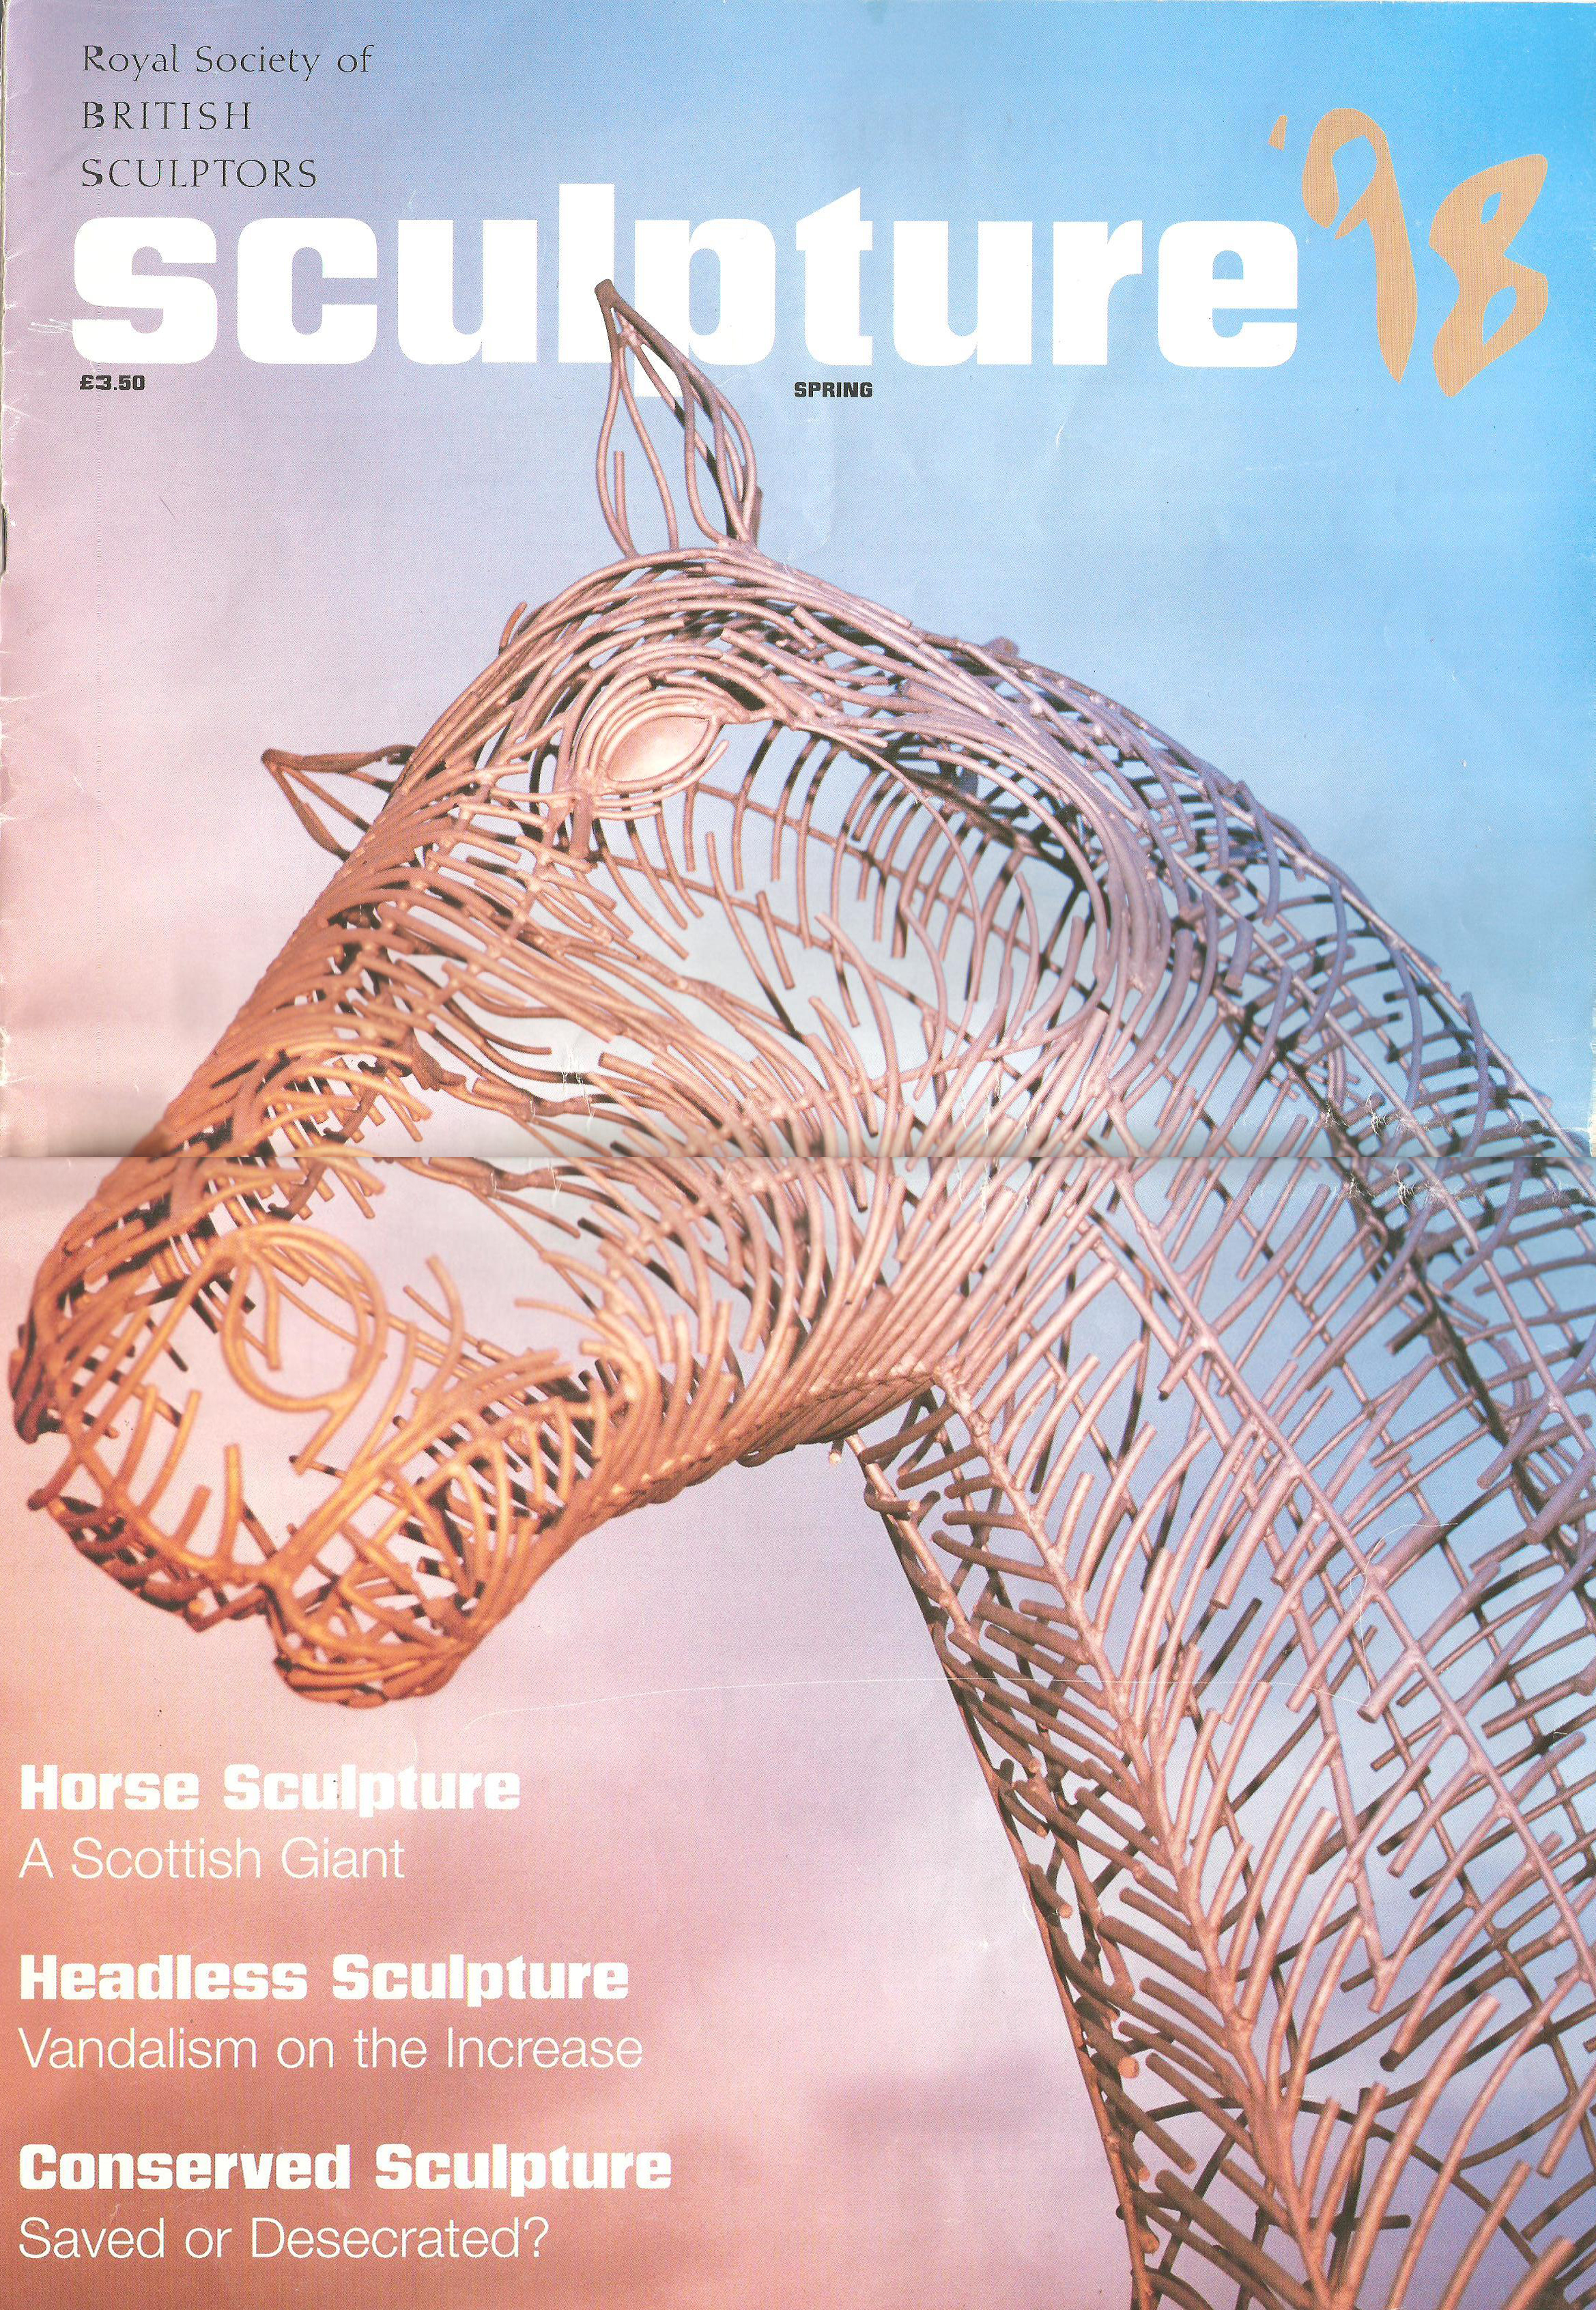 Sculpture spring issue 1998 003.jpg